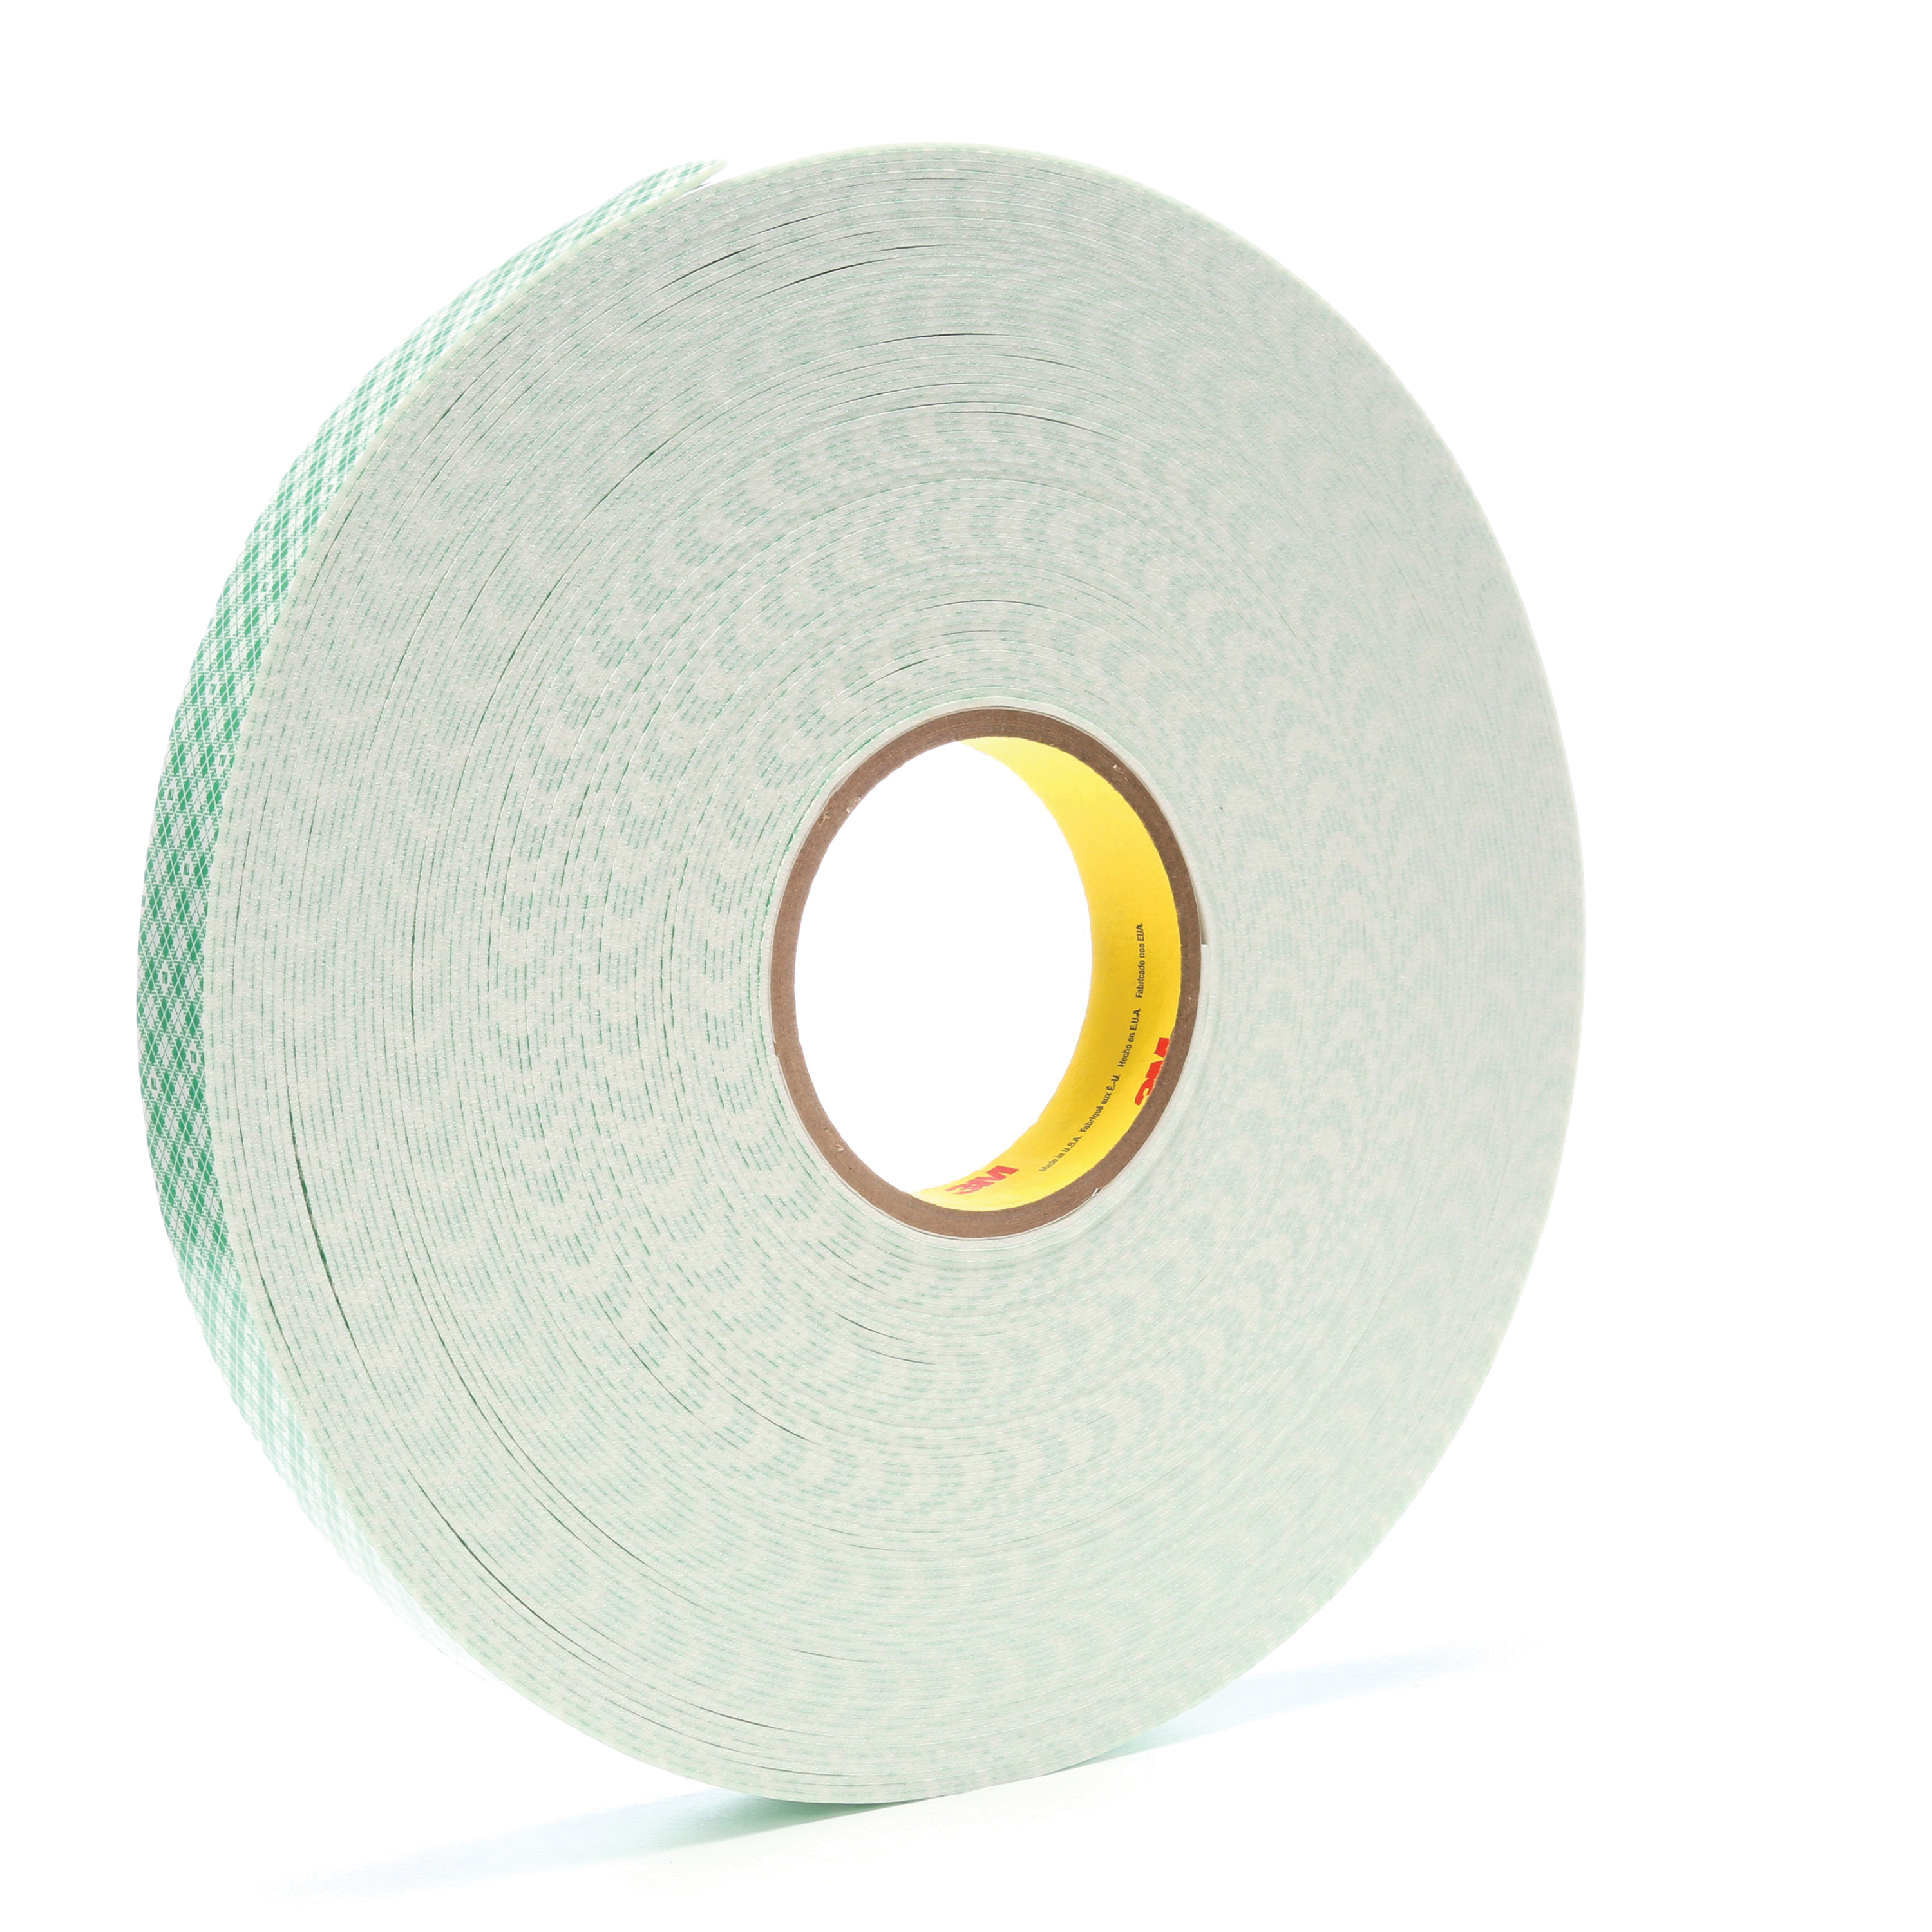 3M™ 021200-06455 Double Coated Tape, 36 yd L x 1 in W, 62 mil THK, Acrylic Adhesive, Urethane Foam Backing, Off-White